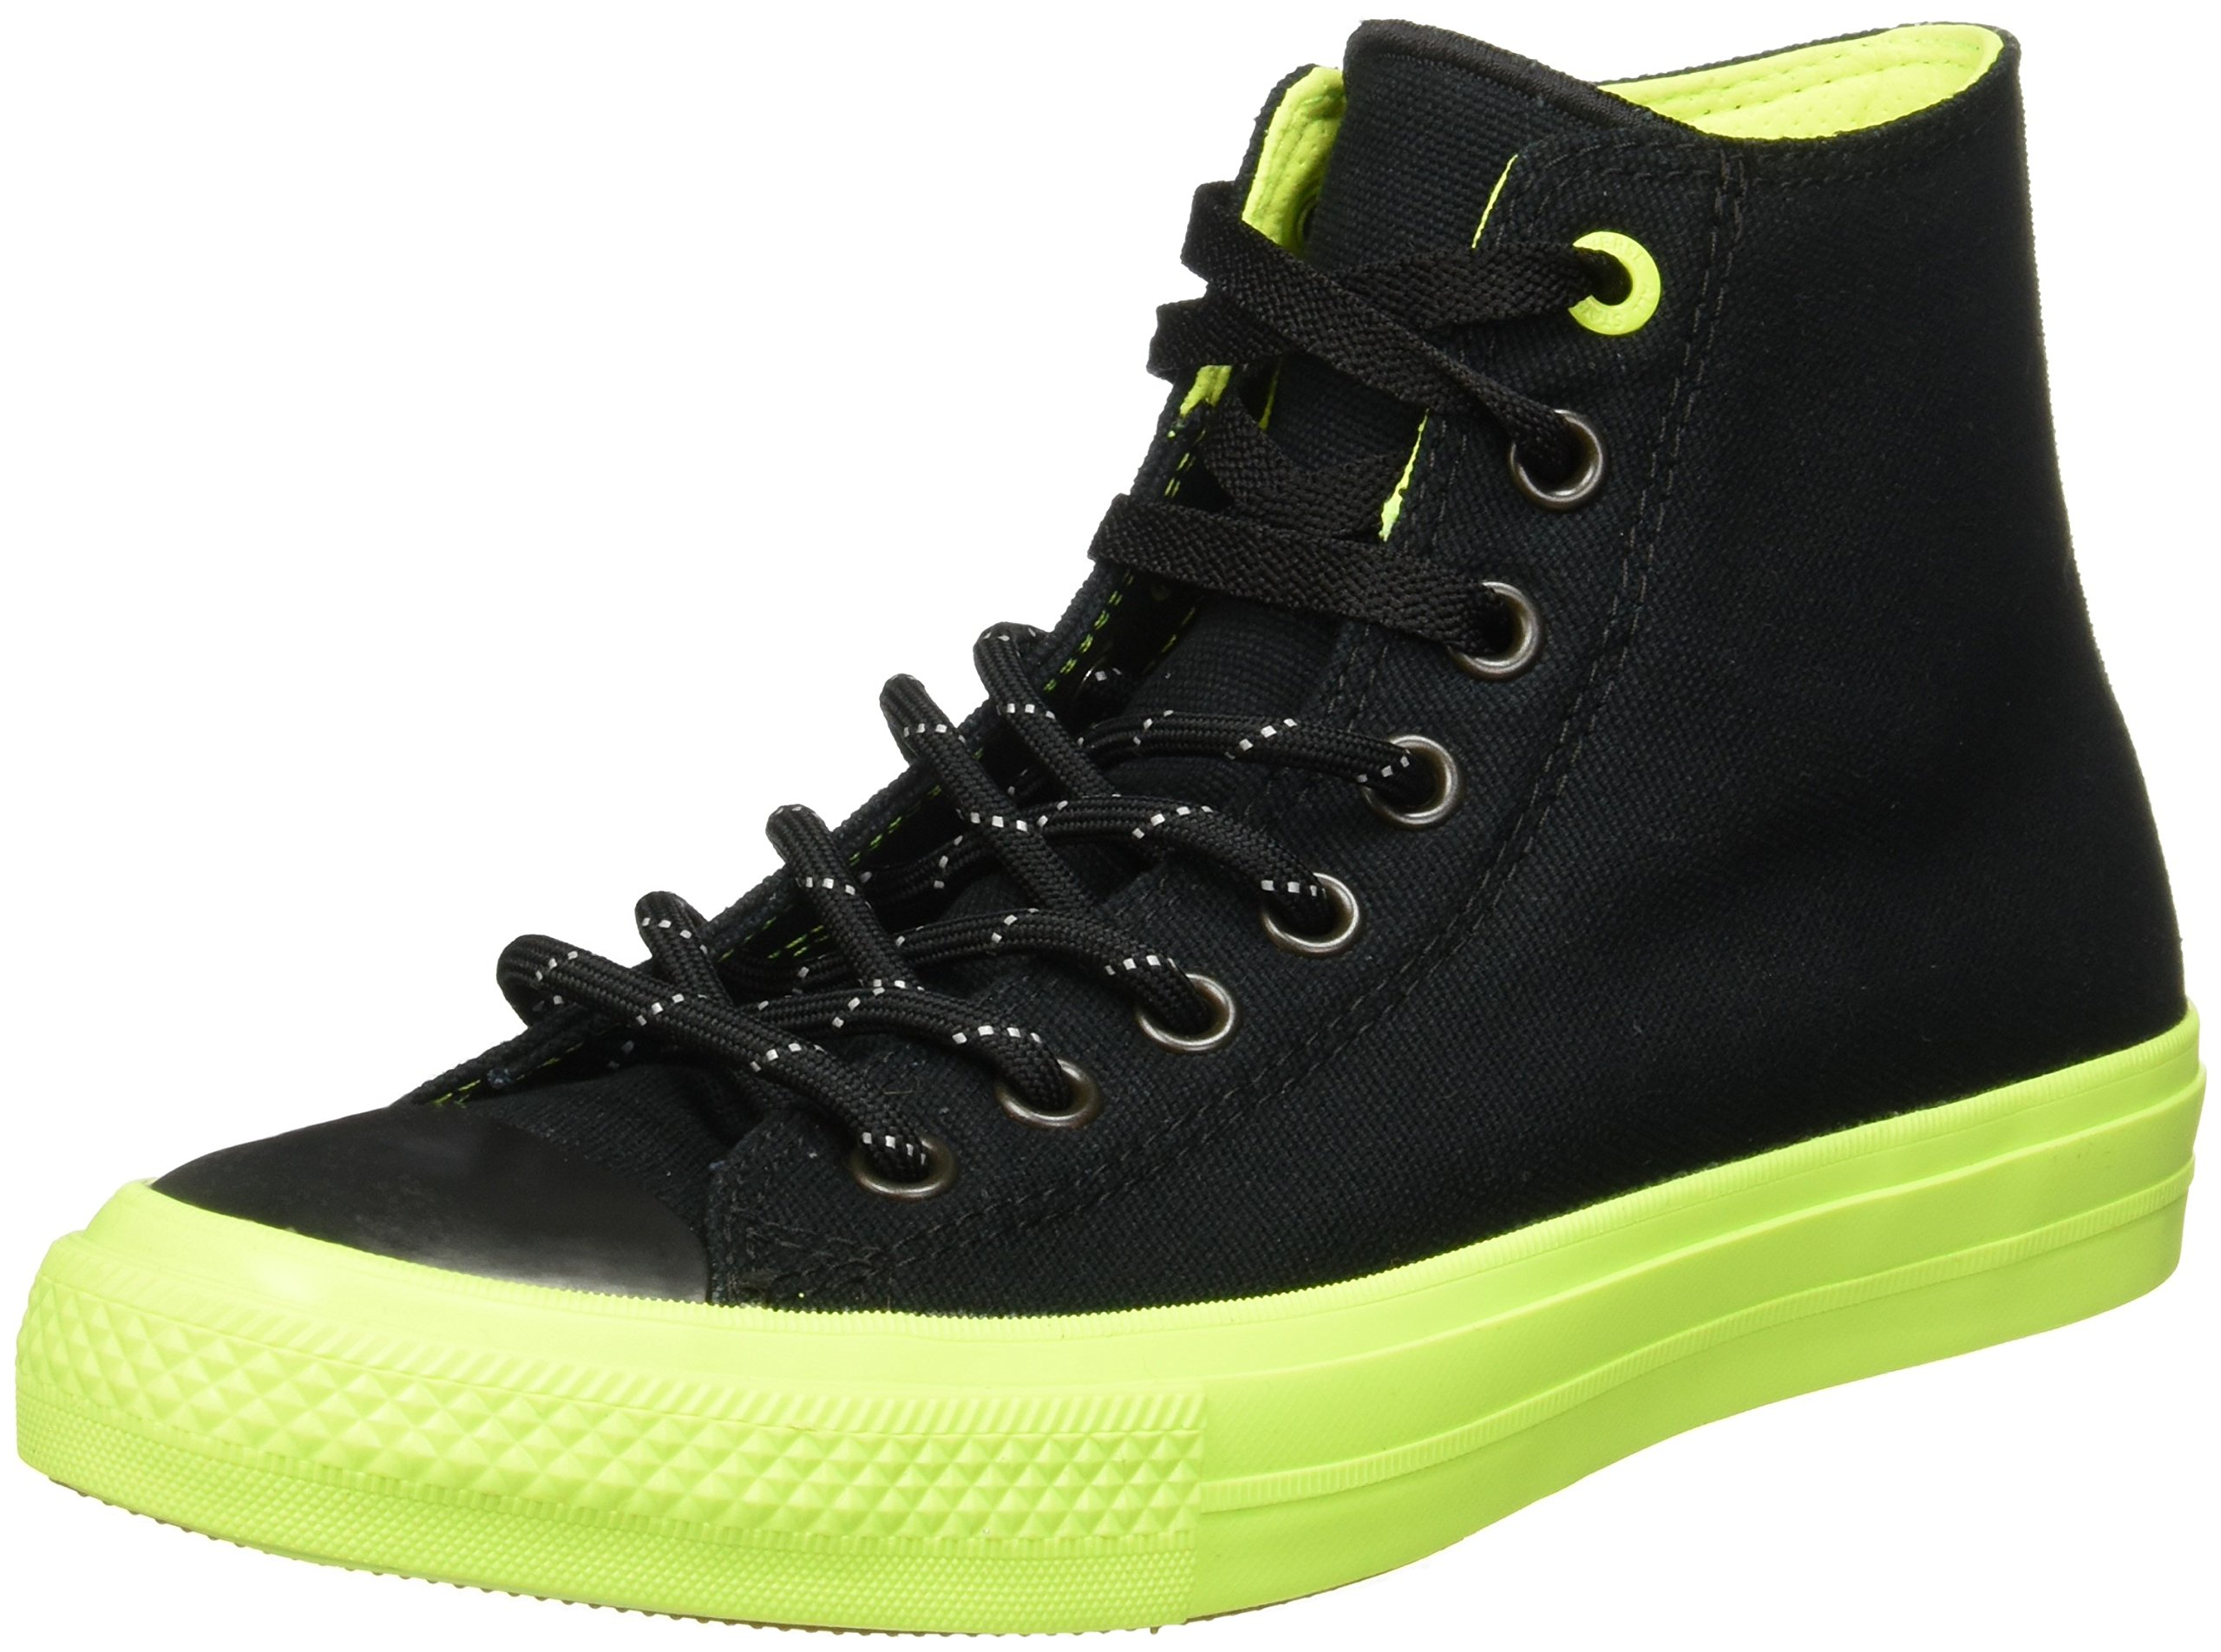 Galleon - Converse Chuck Taylor All Star II Shield Canvas Hi Black Volt Gum  Lace Up Casual Shoes 9 D(M) US Men Black Volt Gum dd98c9d53